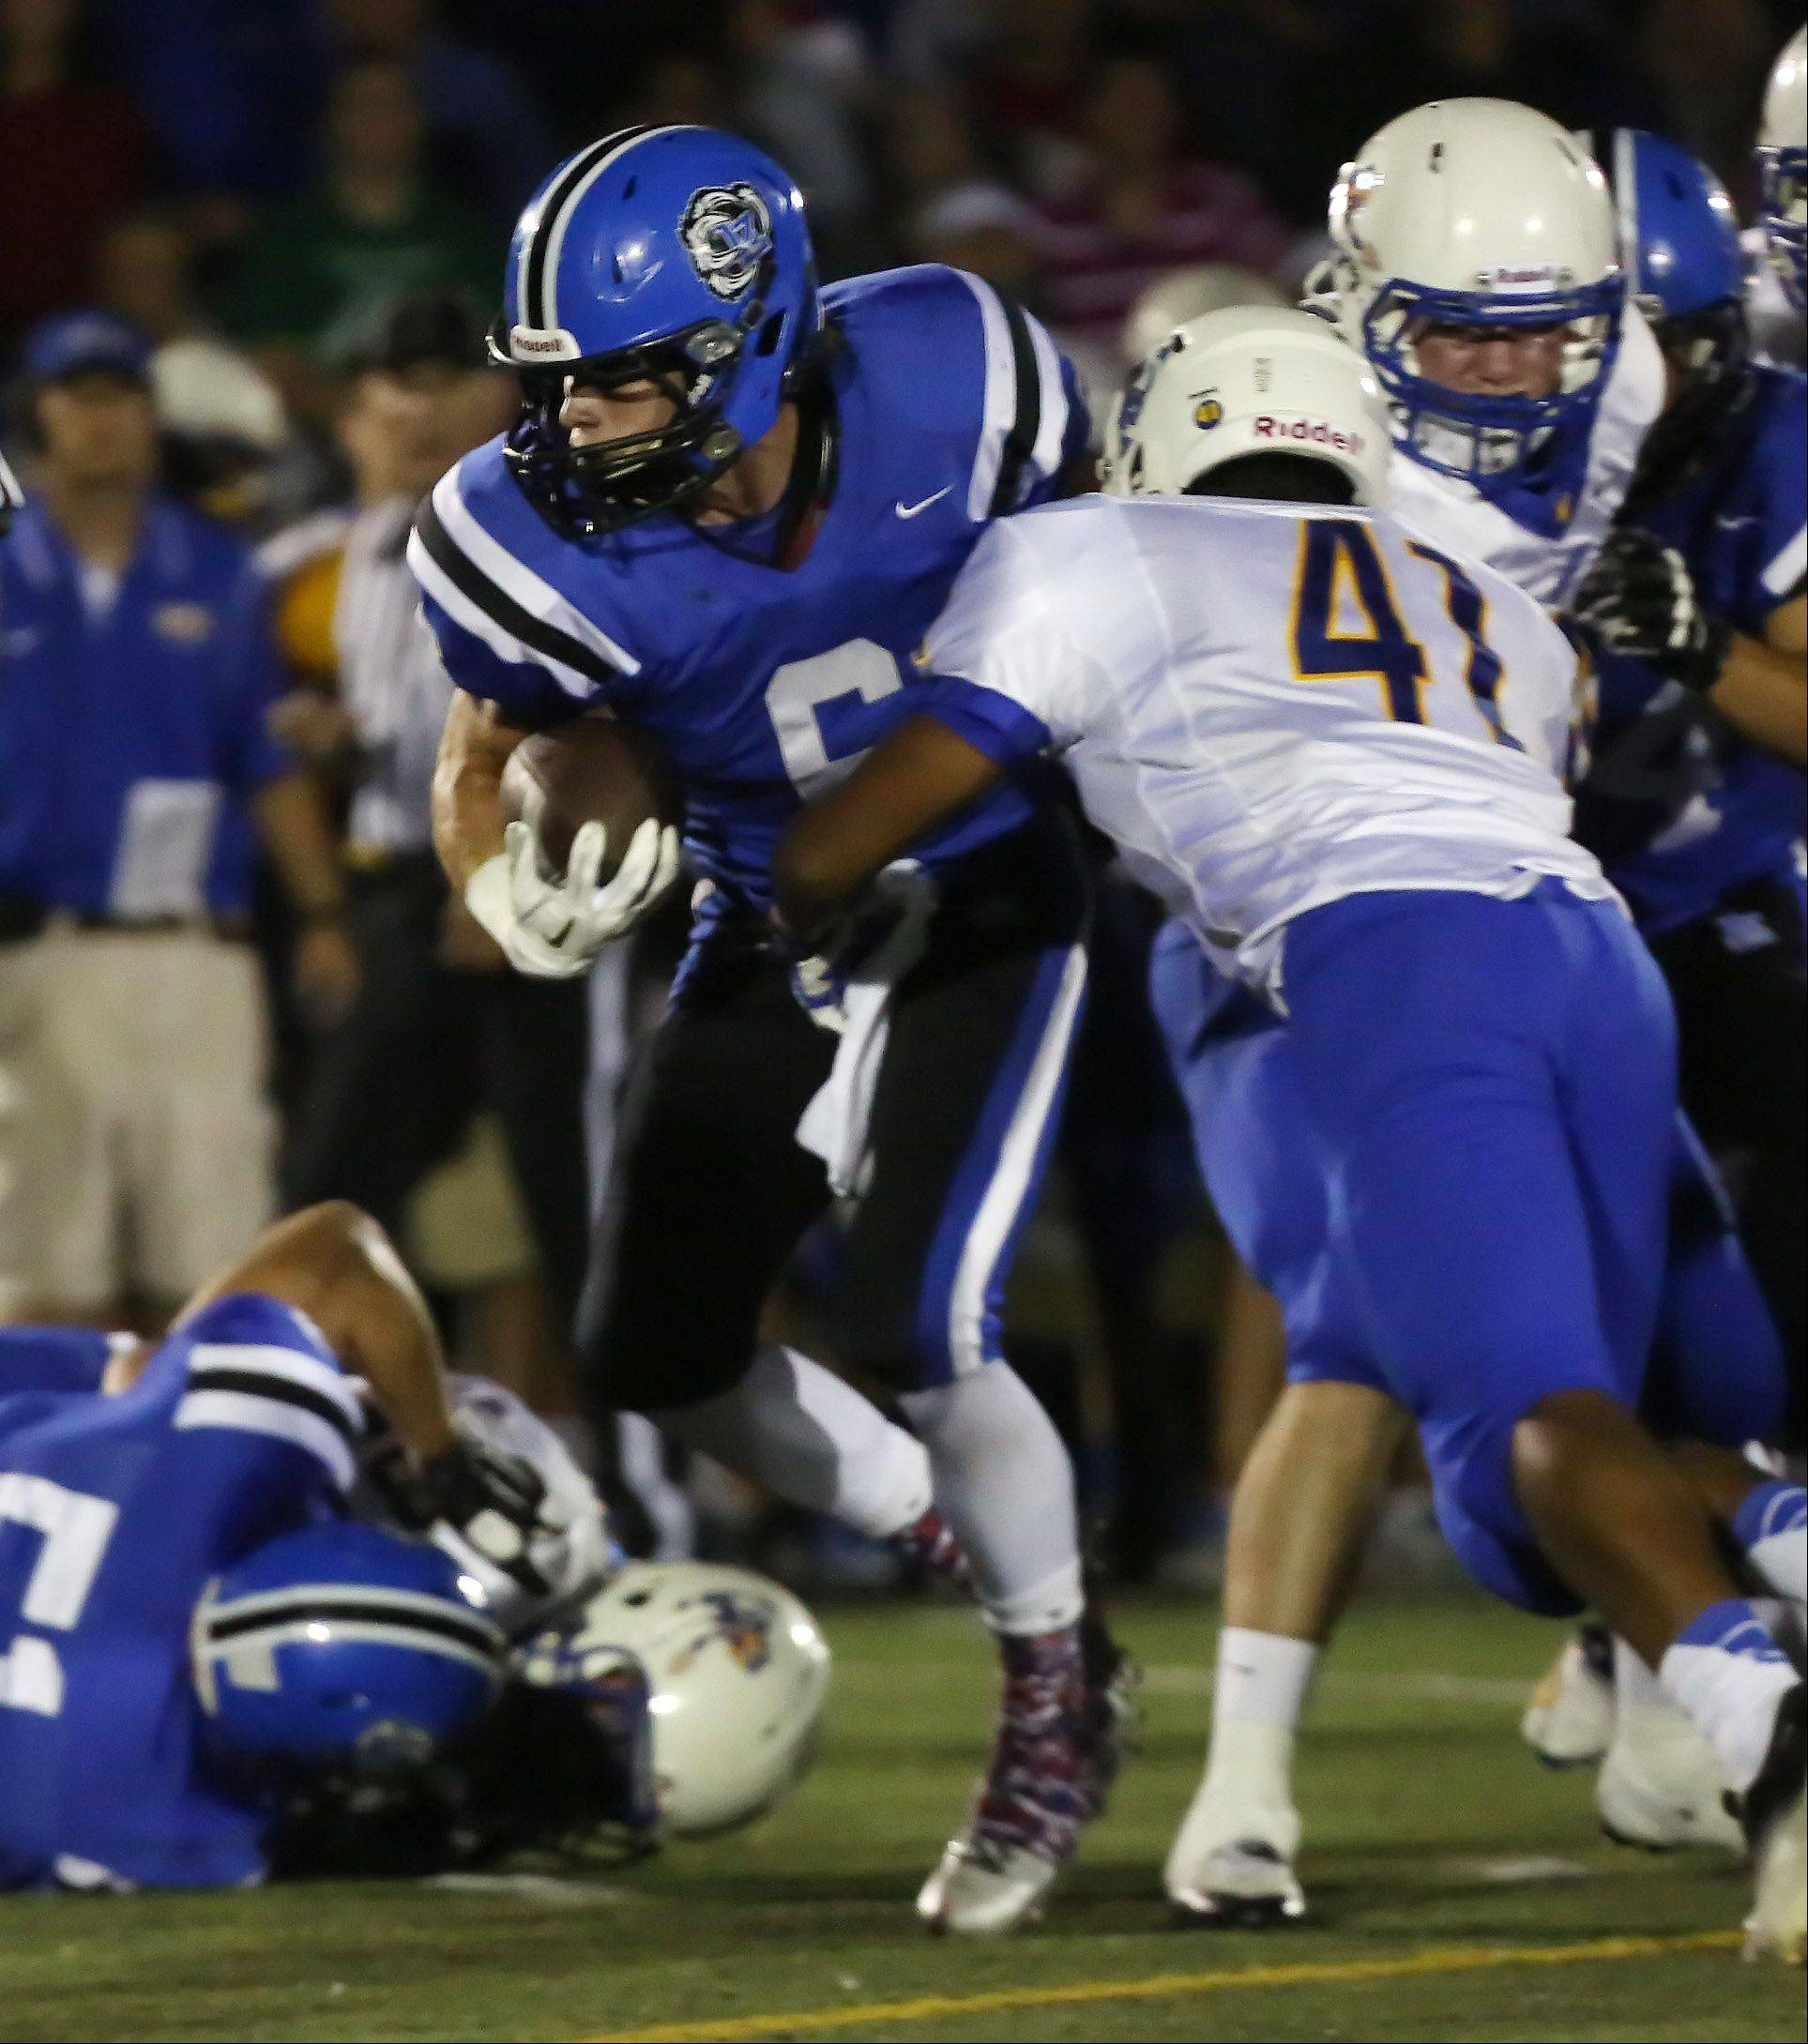 Lake Zurich running back Sean Lynch breaks the tackle of Warren linebacker Zhane Garcia on the way to a touchdown in the first quarter.